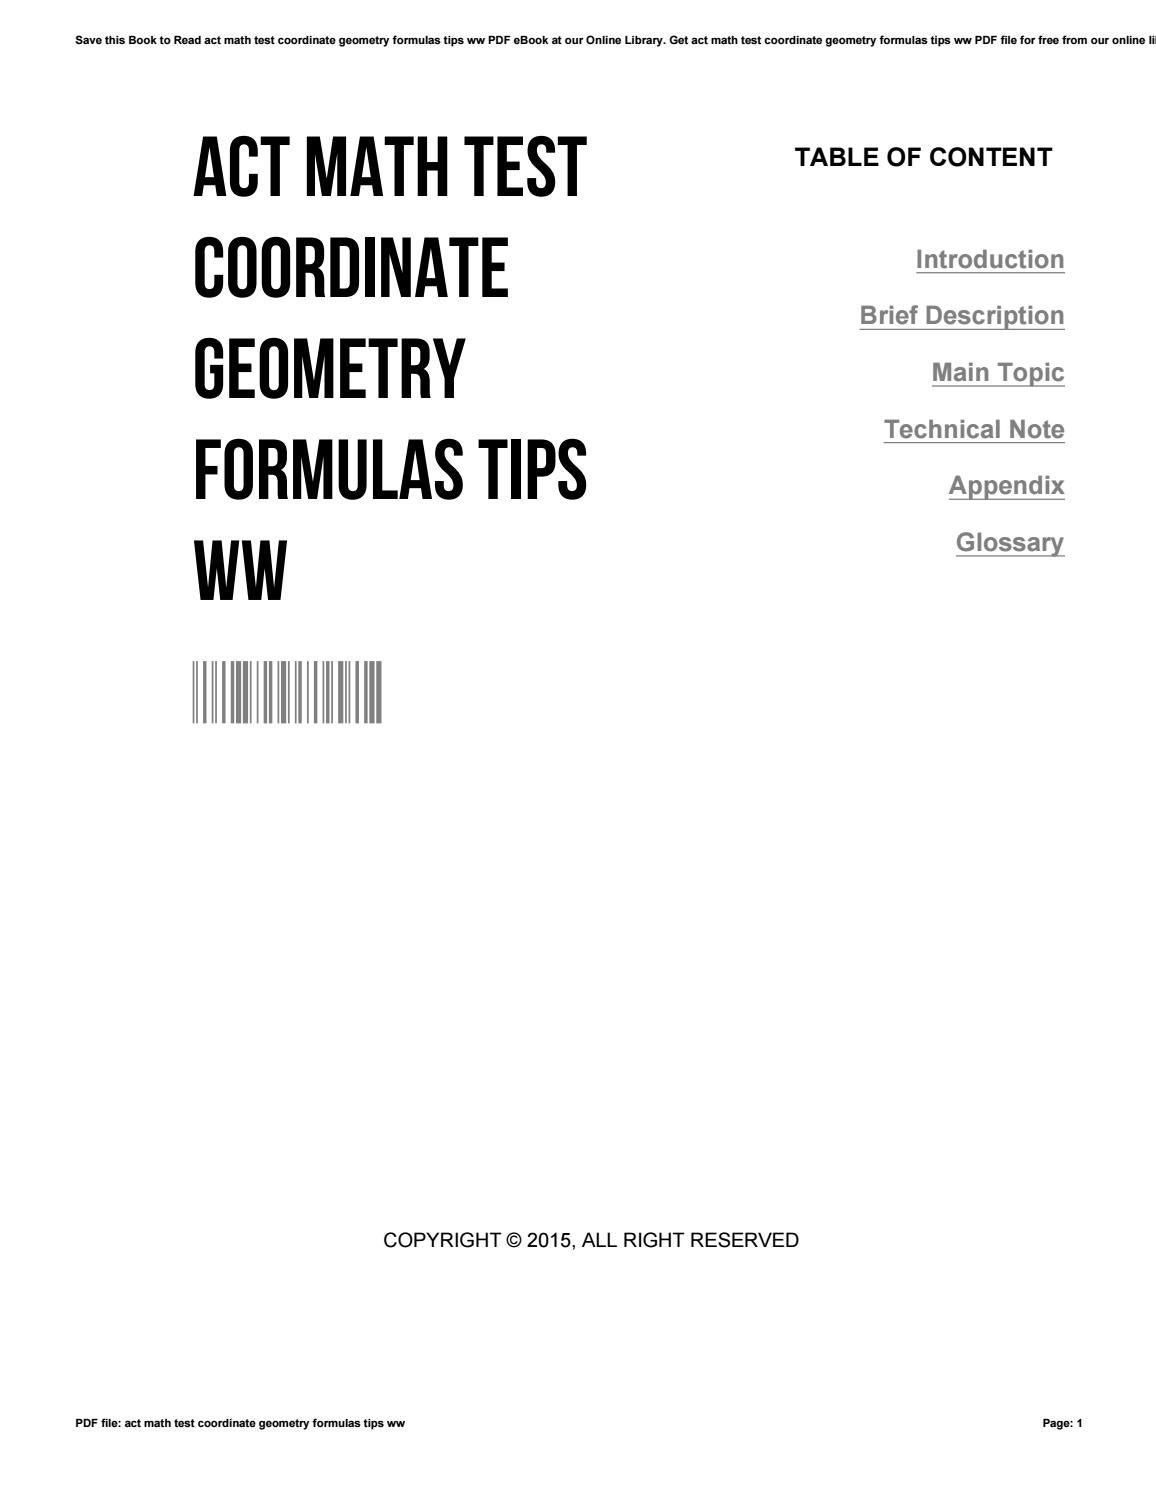 Act math test coordinate geometry formulas tips ww by ...